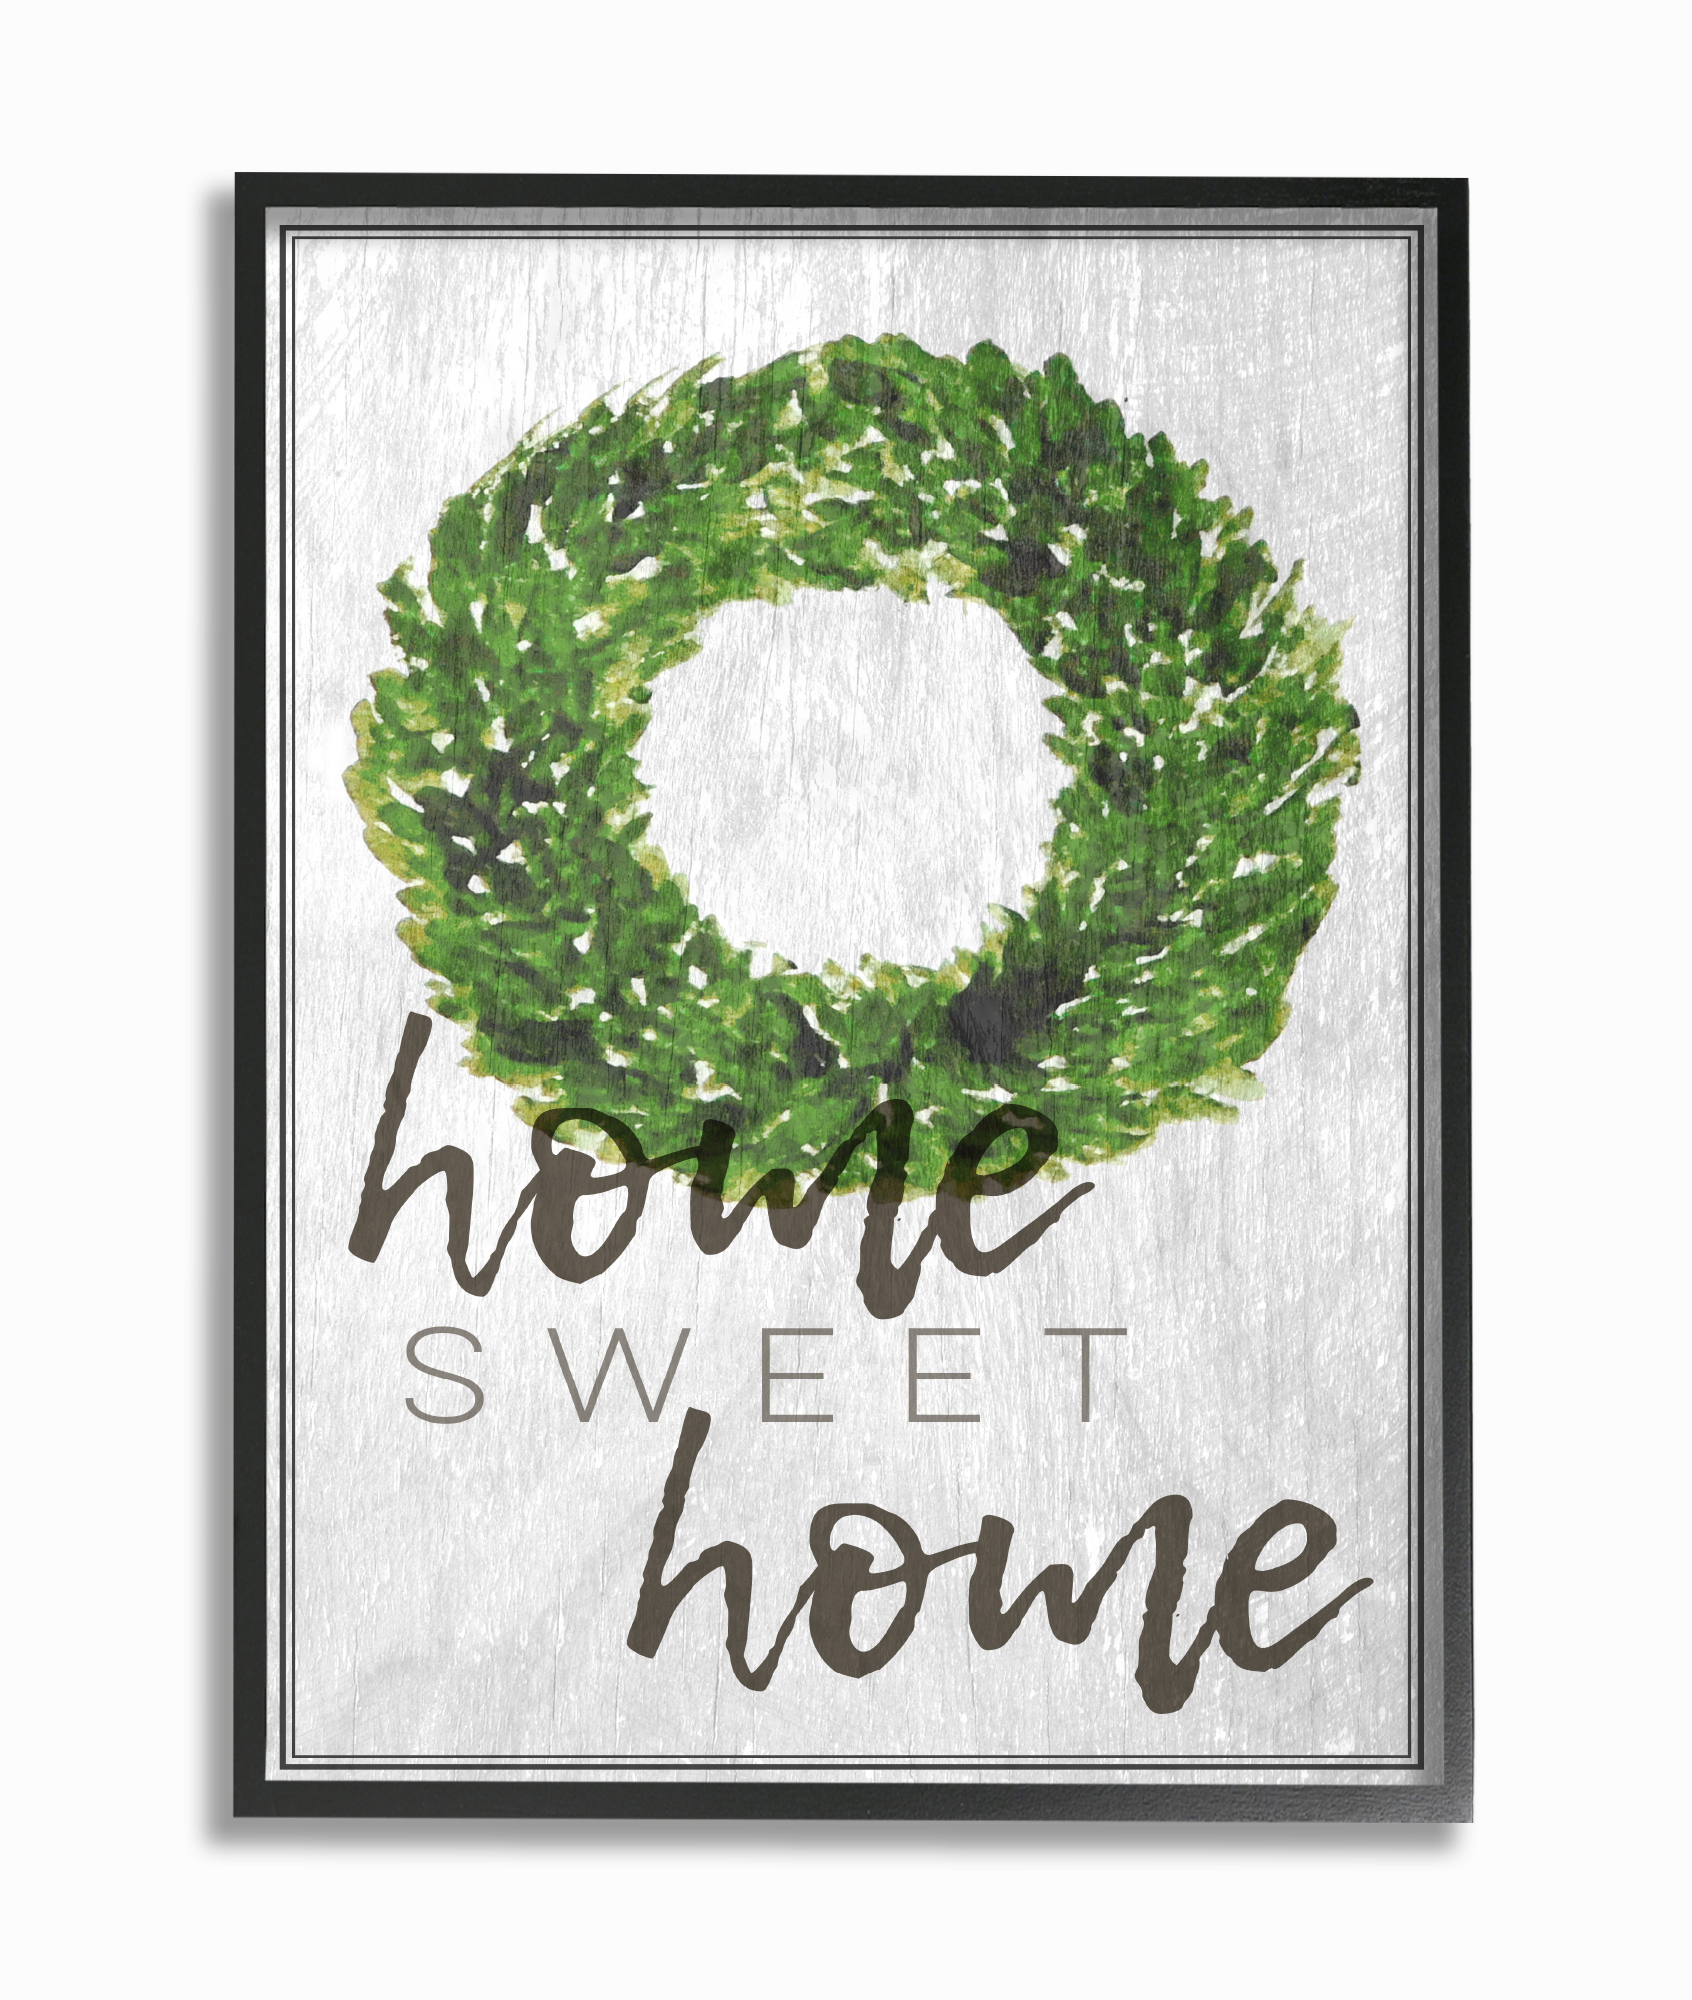 The Stupell Home Decor Collection Home Sweet Home Foliage Wreath Framed Giclee Texturized... by Stupell Industries